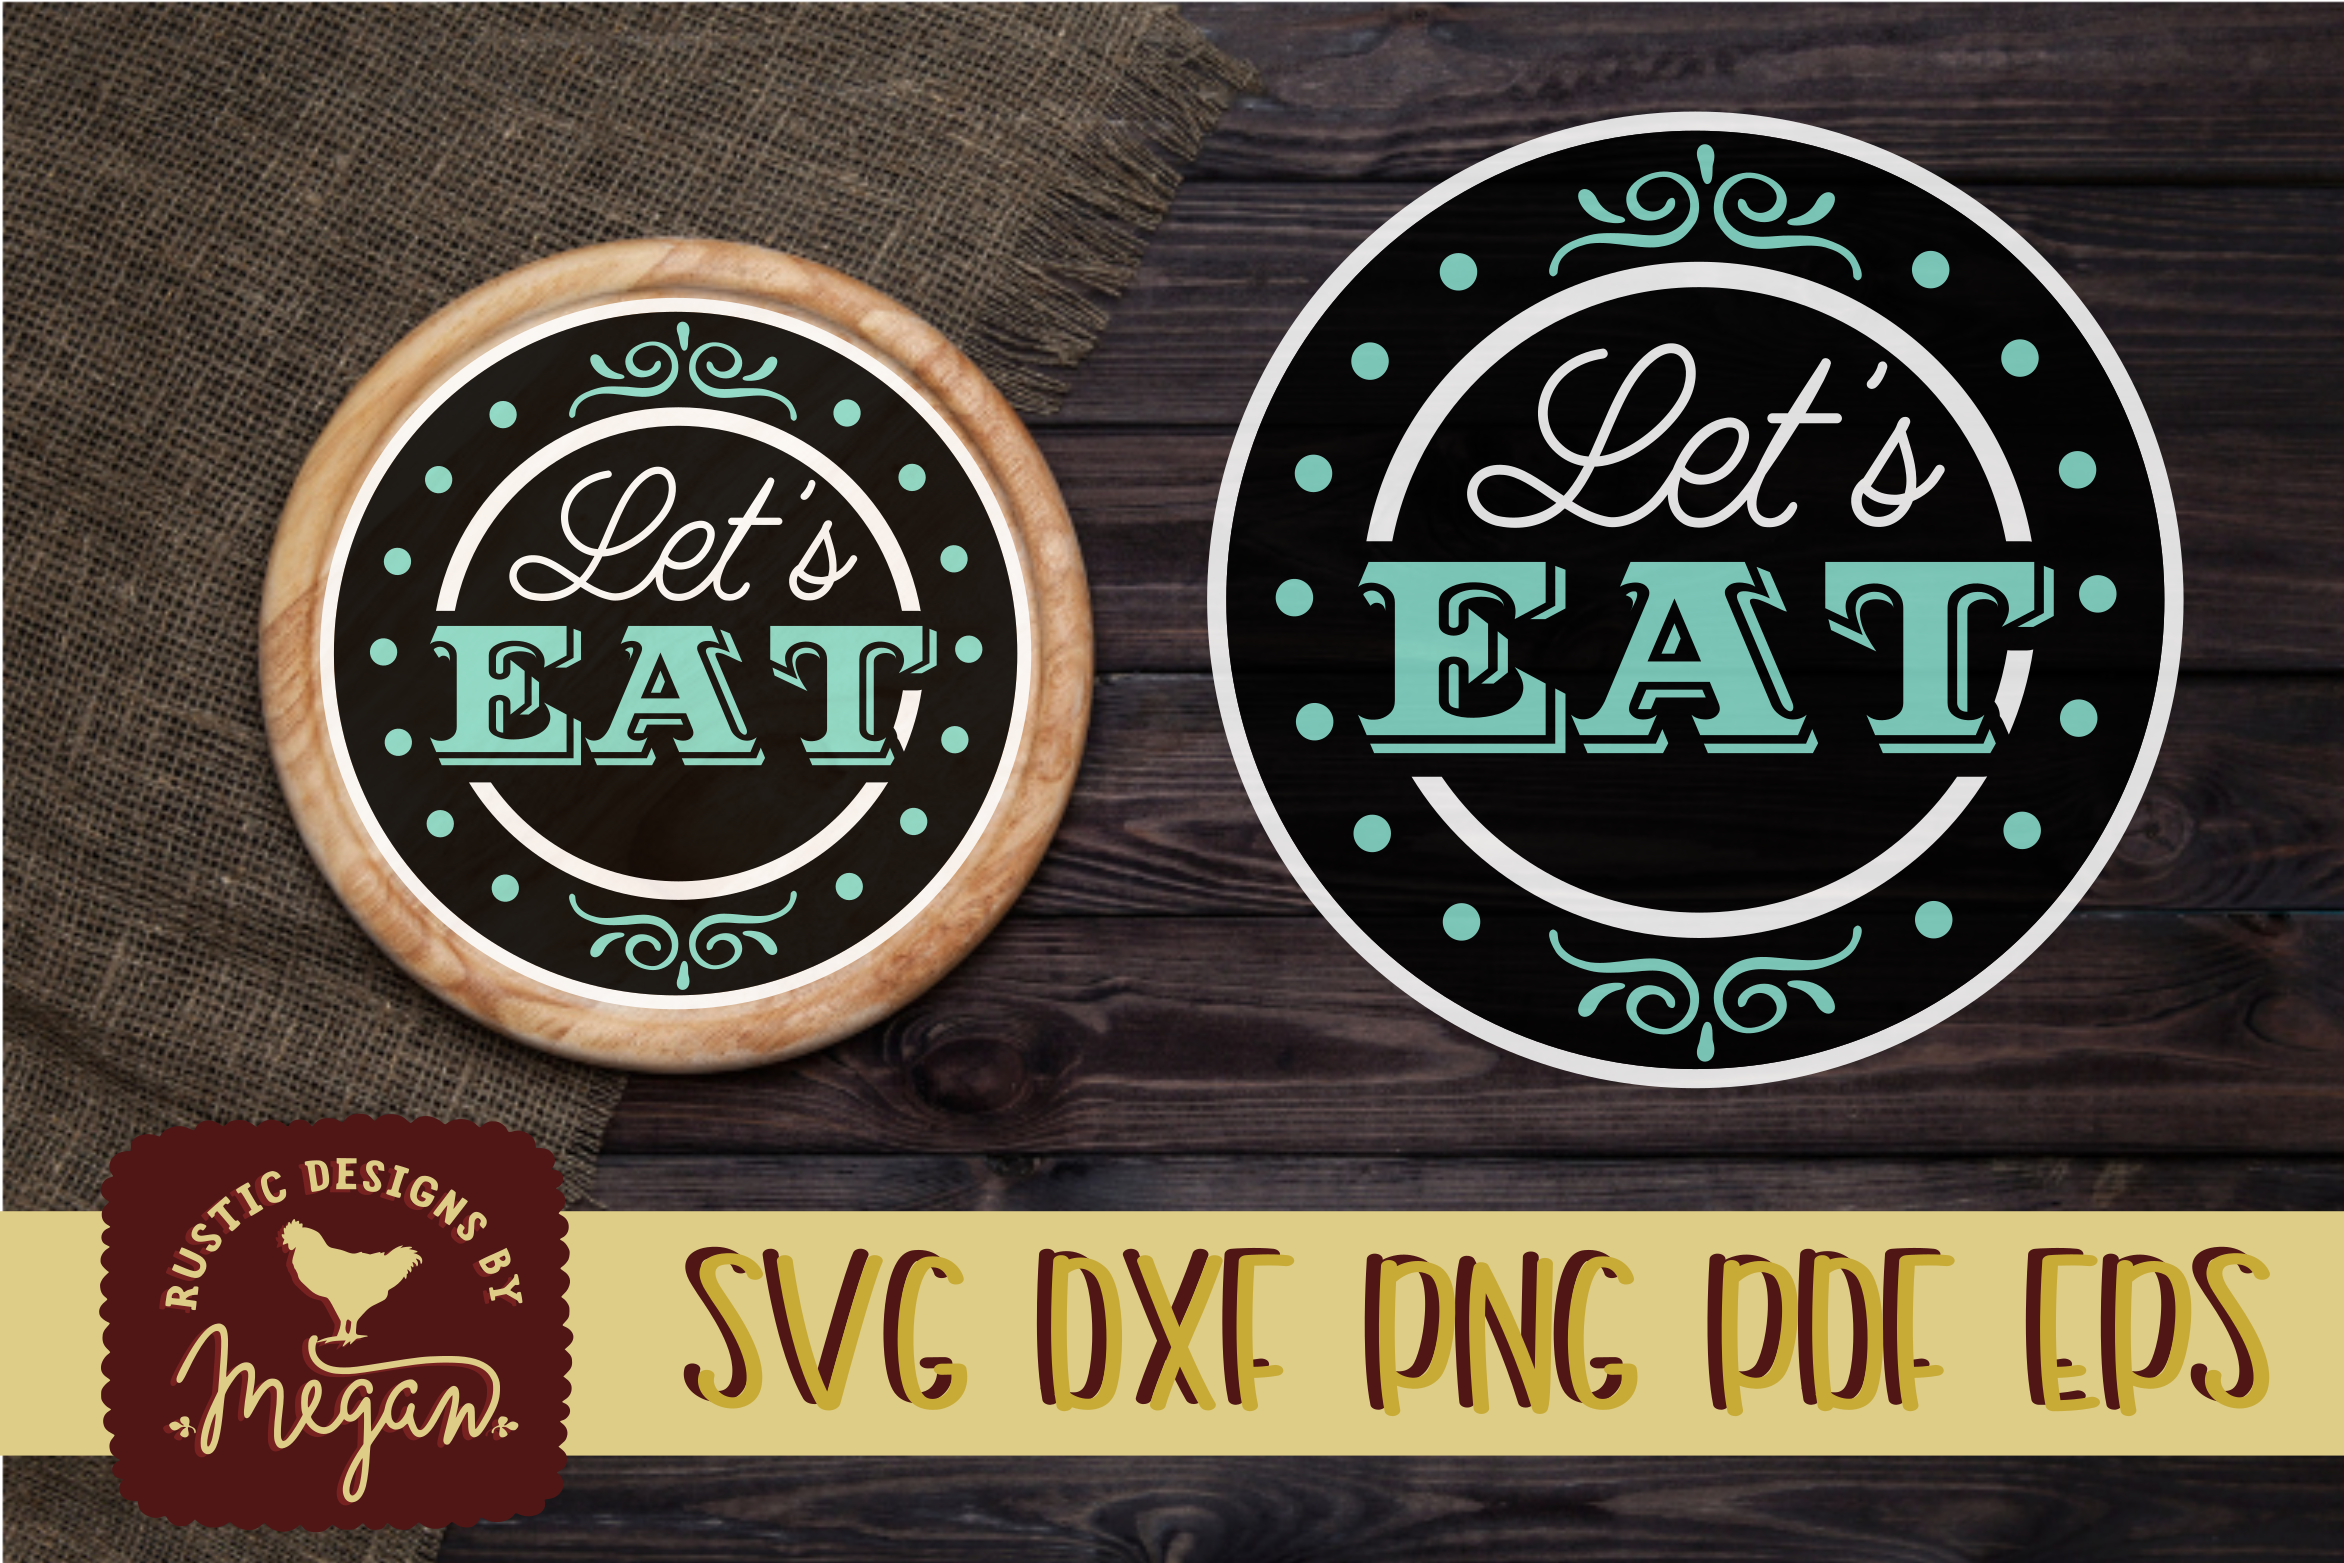 Let's Eat Rustic Farmhouse Round SVG EPS DXF Cut file example image 1